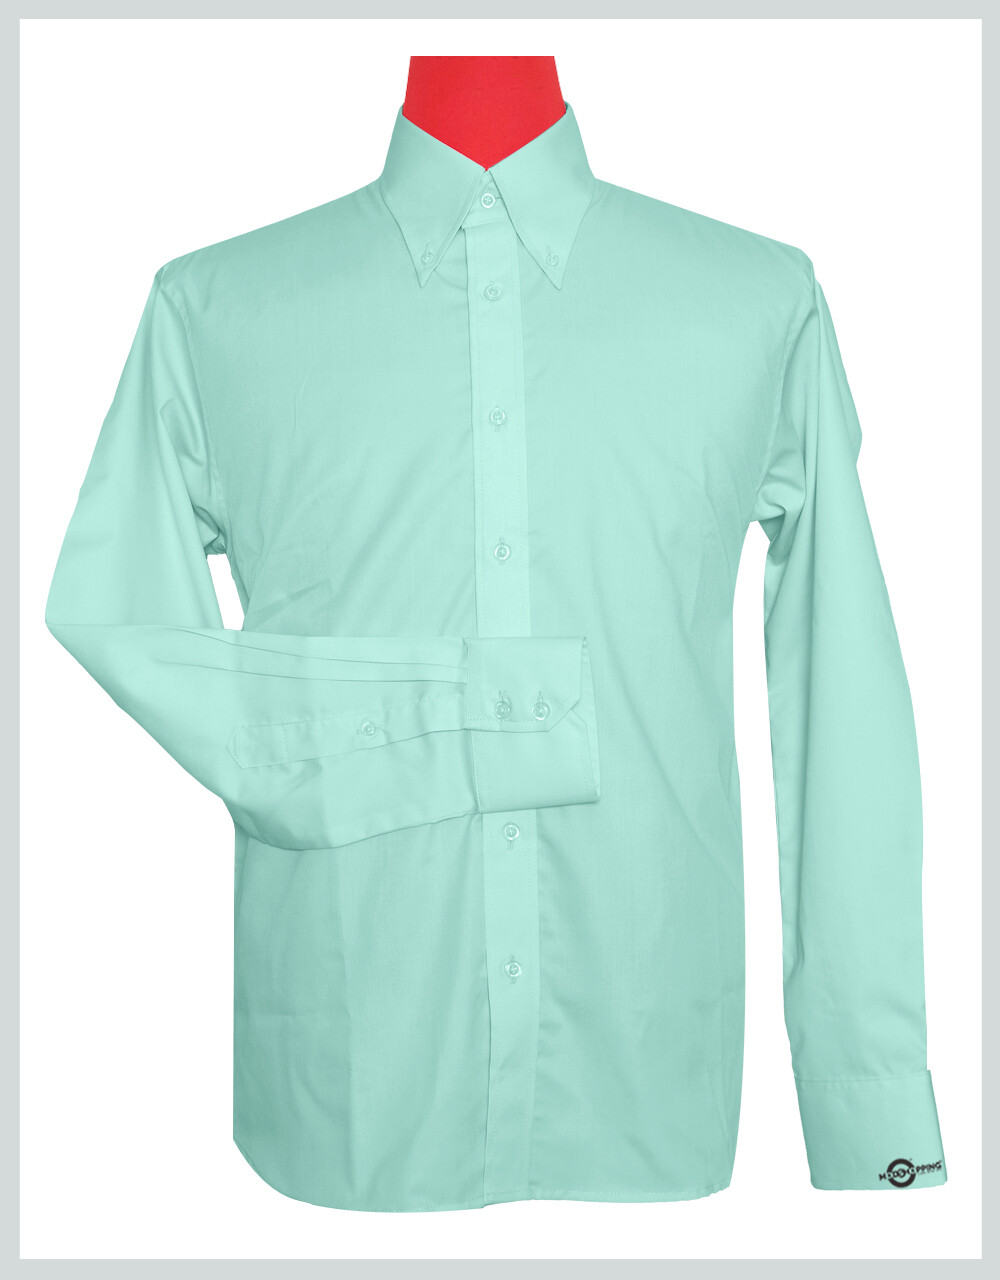 Button-Down Collar Shirt | Sea Green Color Shirt For Man